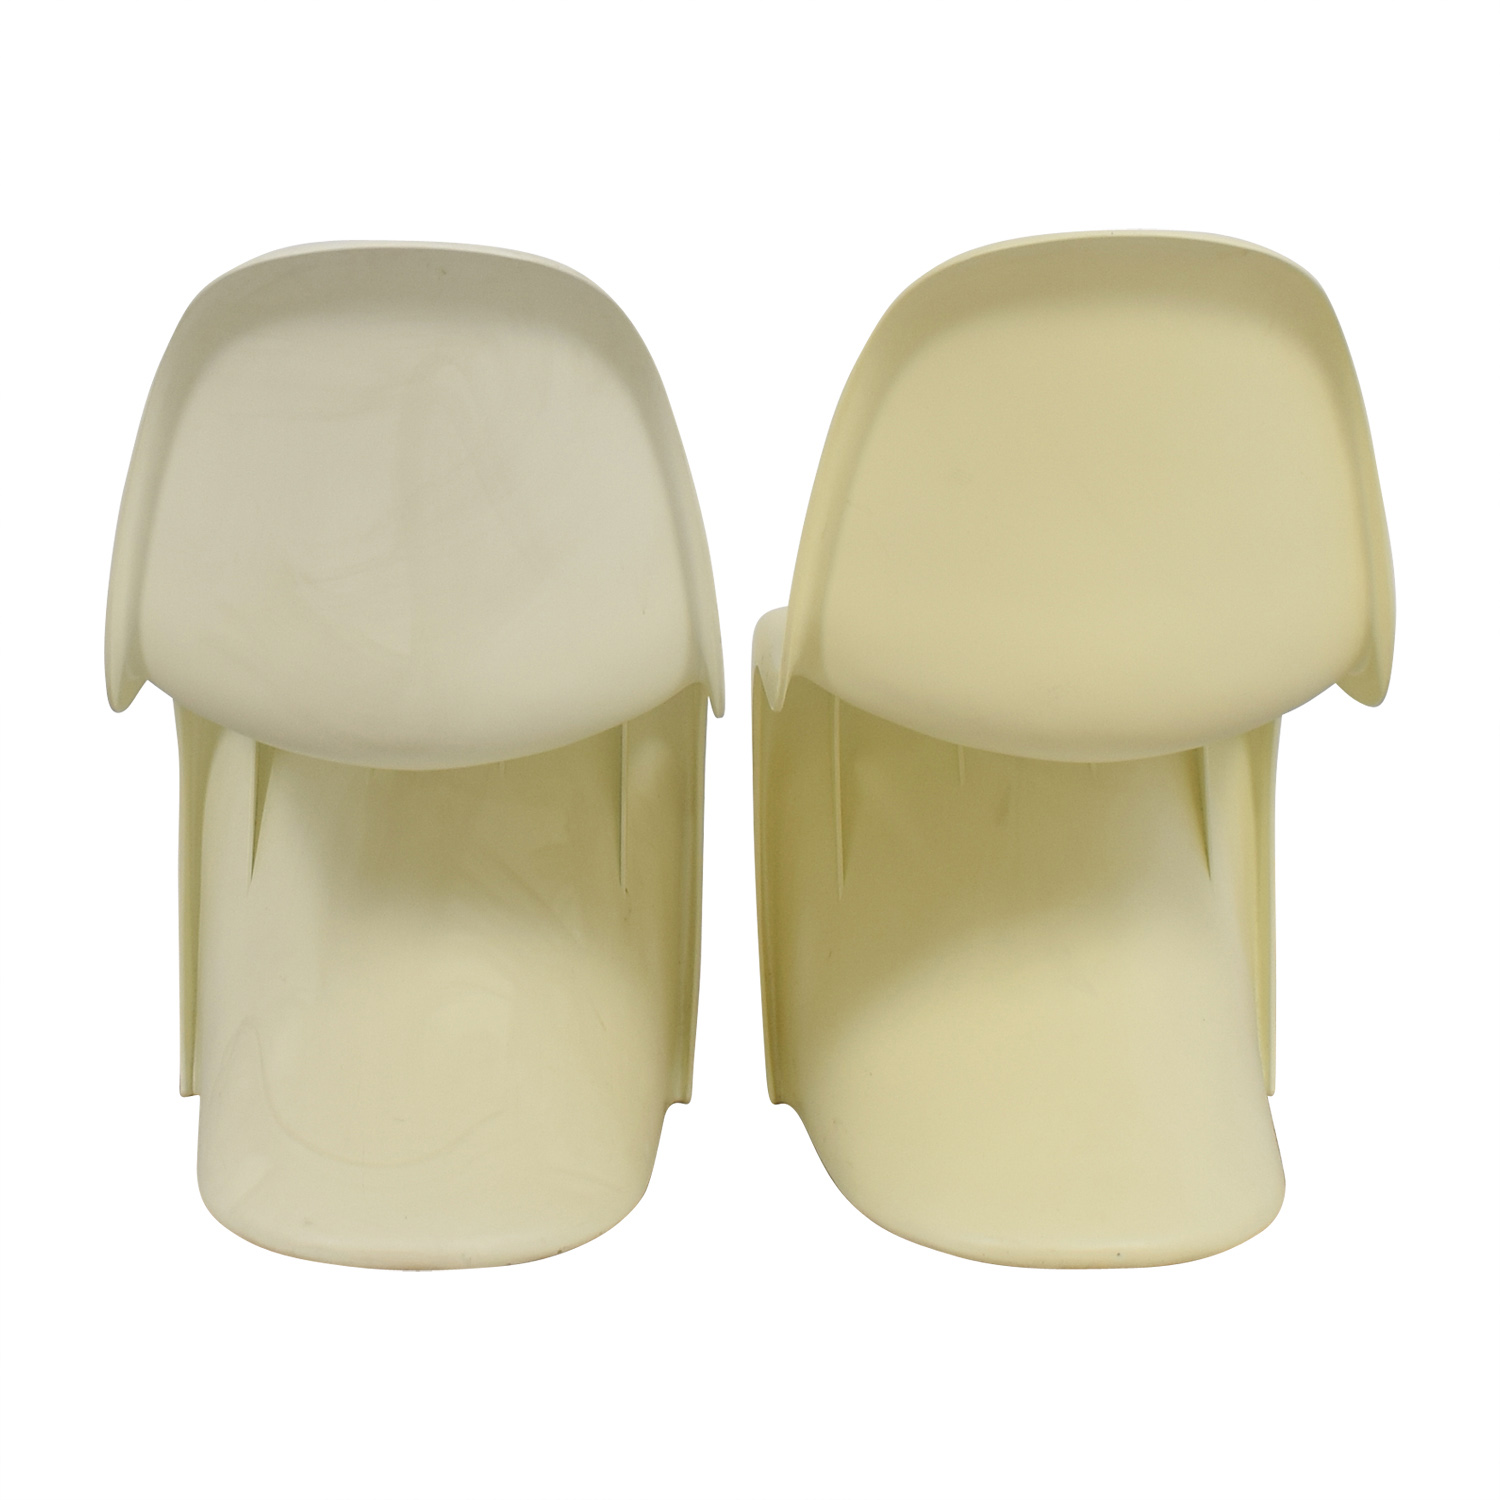 Vintage White Mod Chairs price